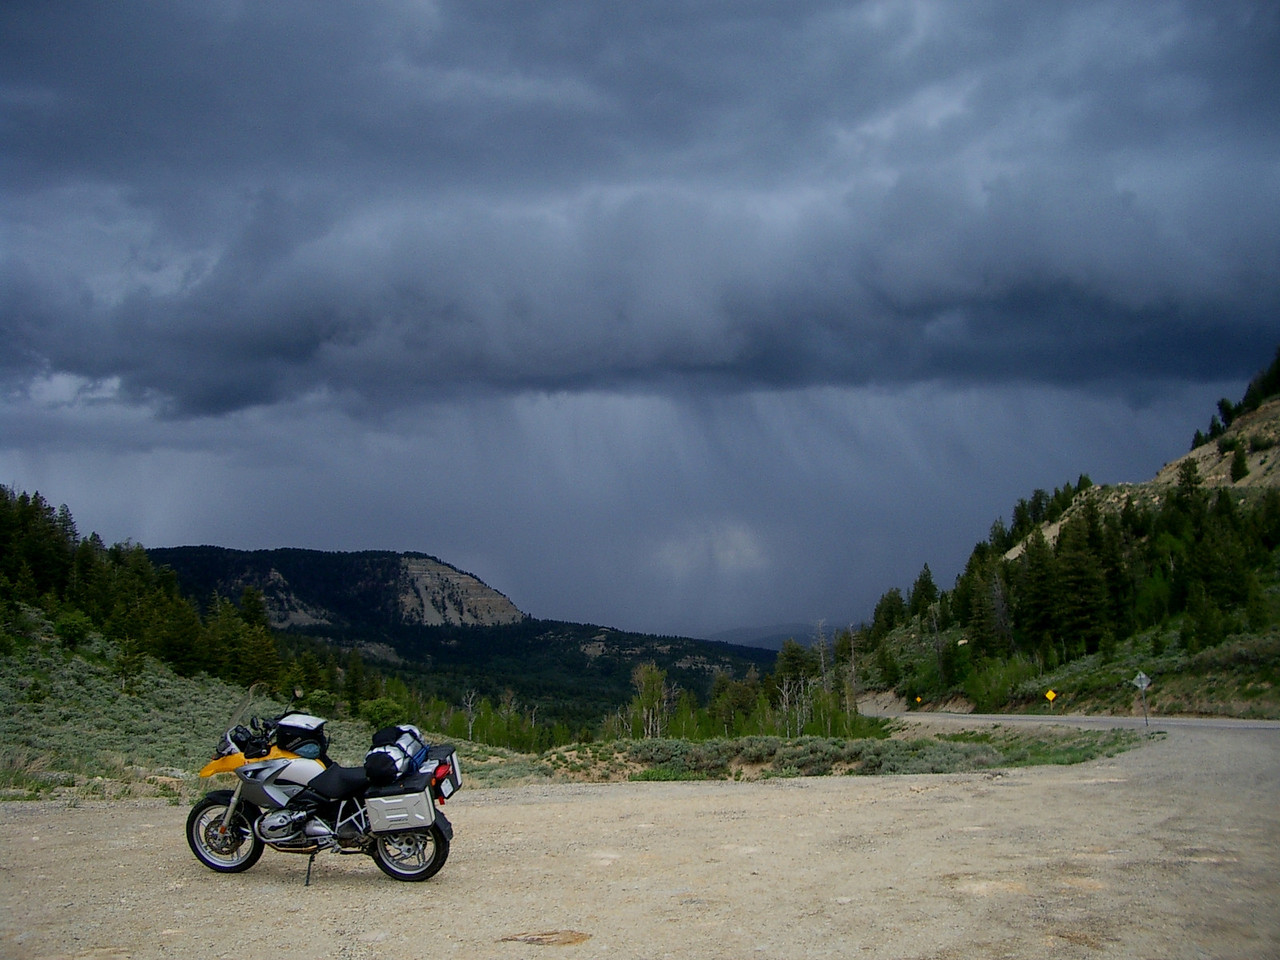 Damn, I'm headed straight into that storm! Not very inviting on a bike.<br /> <br /> Some other riders came through the same pass a few minutes after me, saw these clouds, and soon we were all changing into our rain gear together.